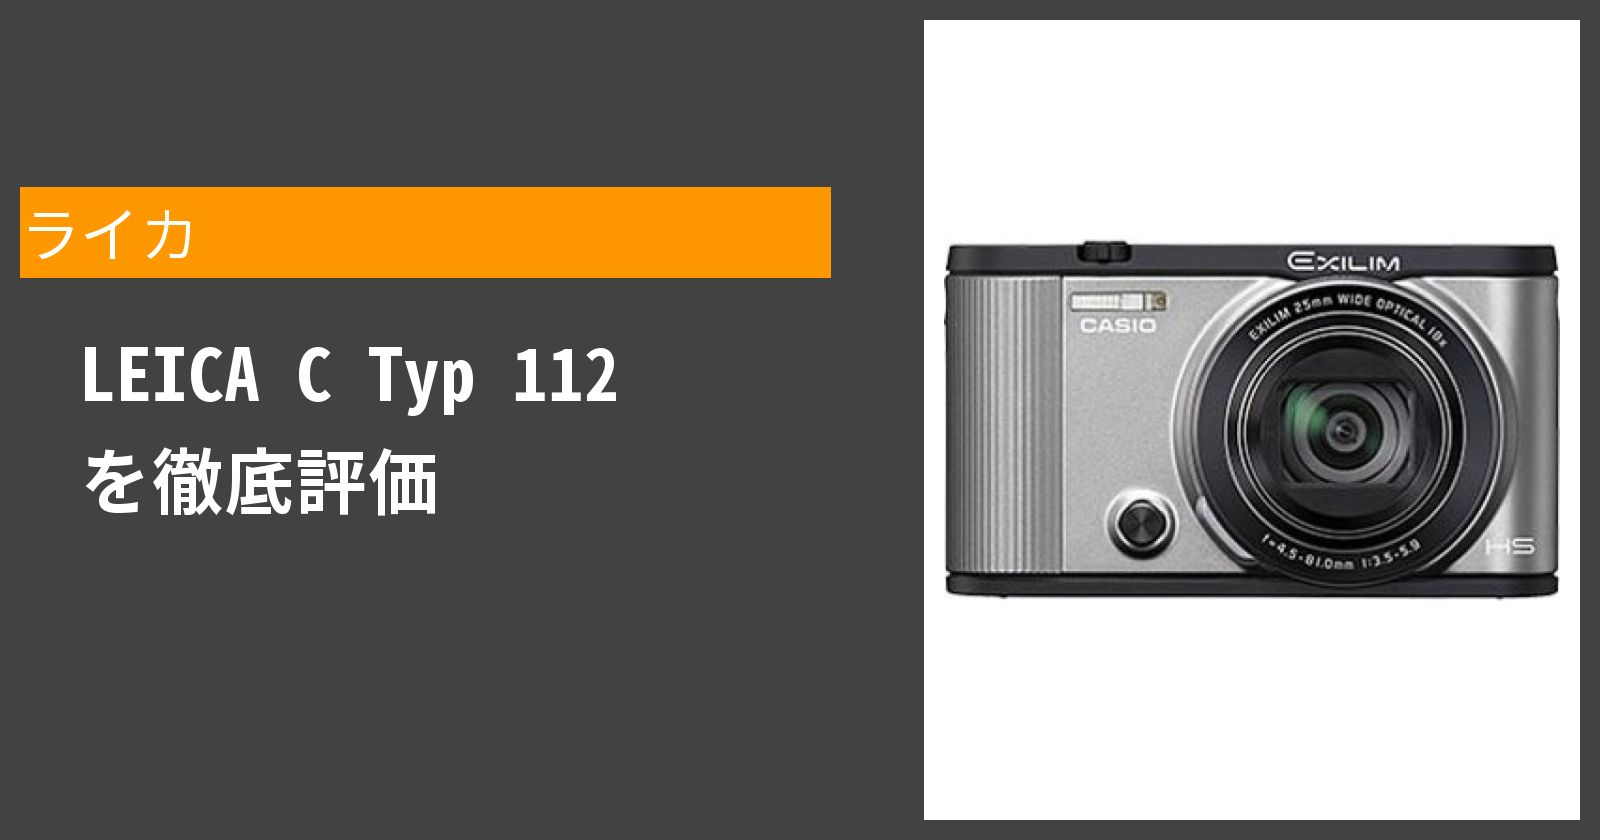 LEICA C Typ 112を徹底評価